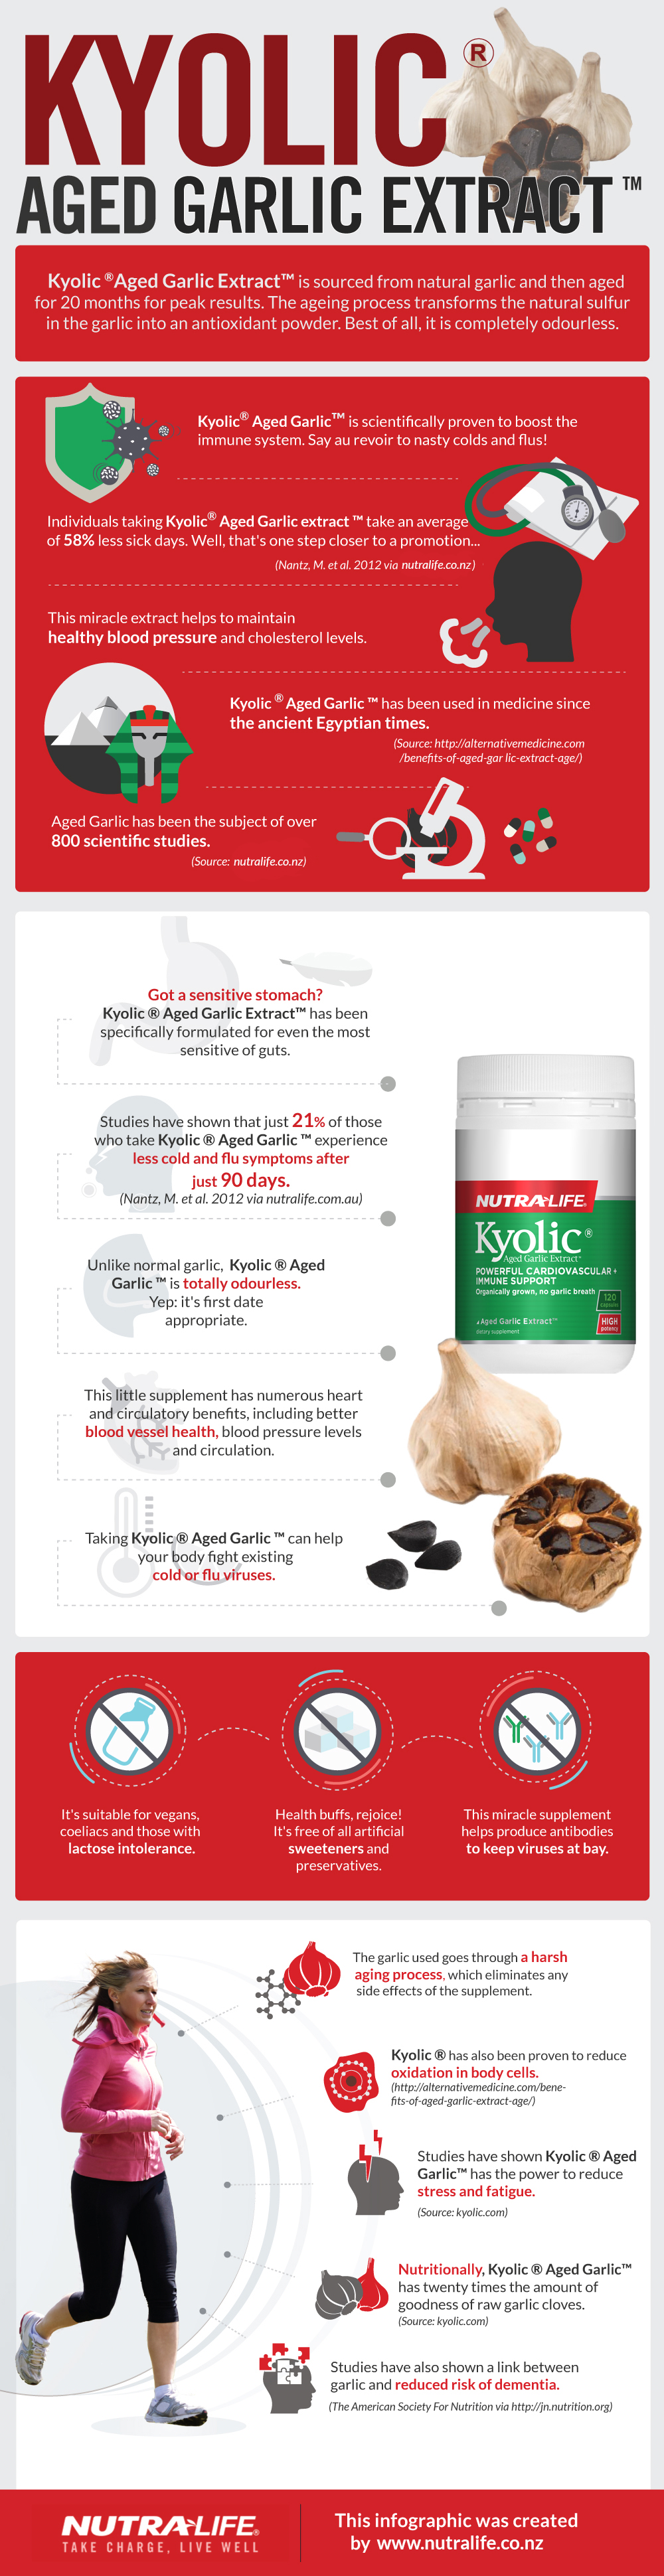 kyolic aged garlic extract (infographic) | nutra-life new